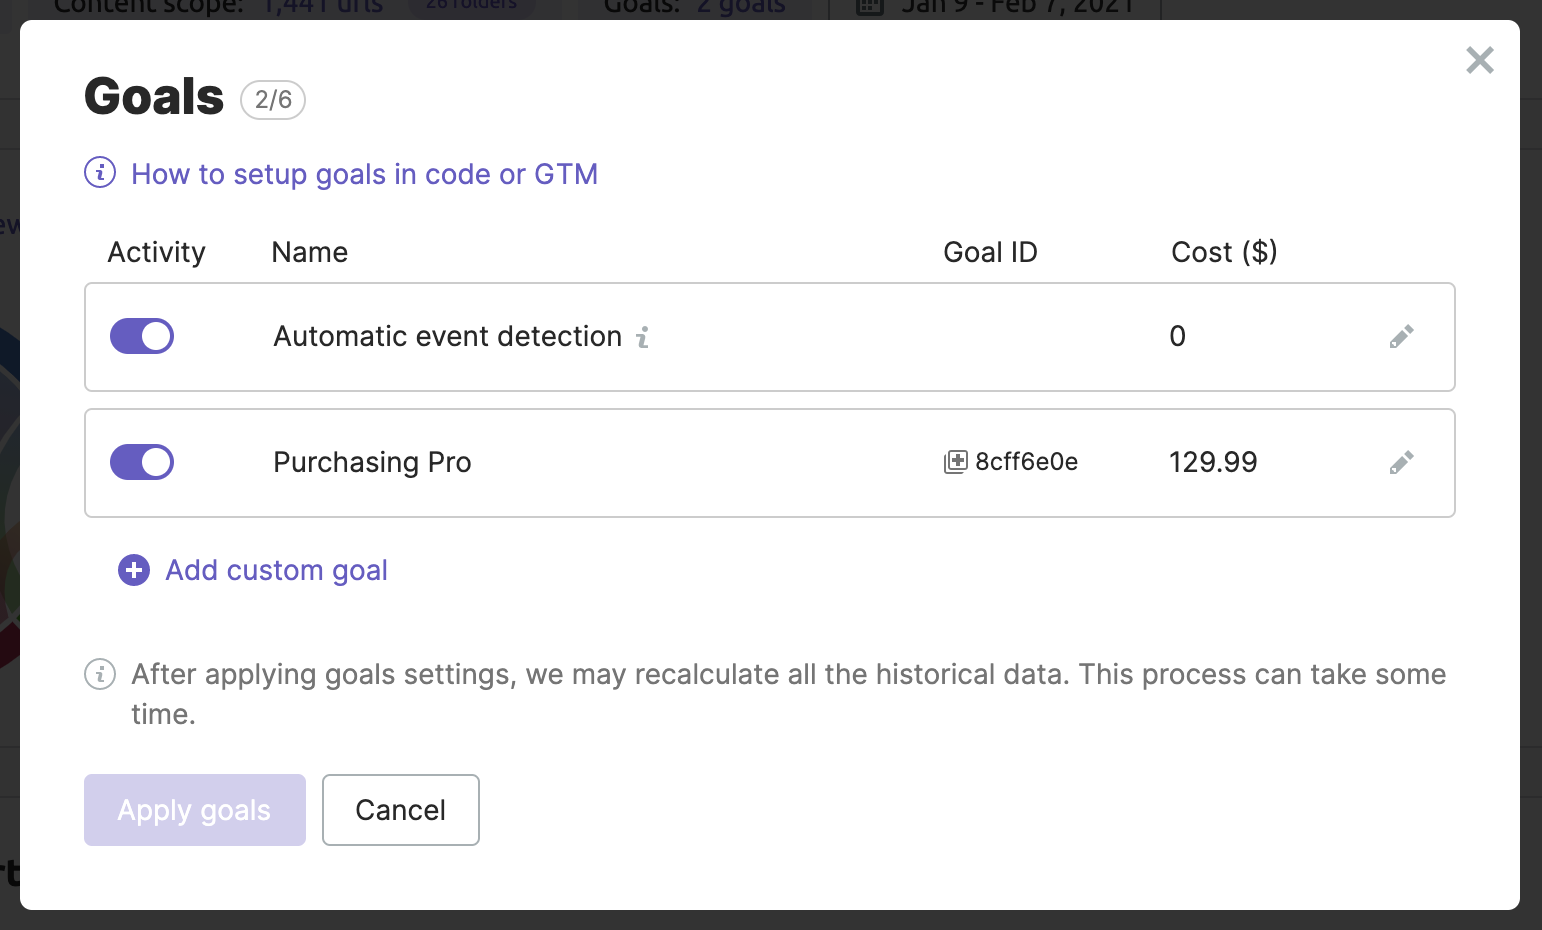 How to add a custom goal in the goals management modal window of ImpactHero.